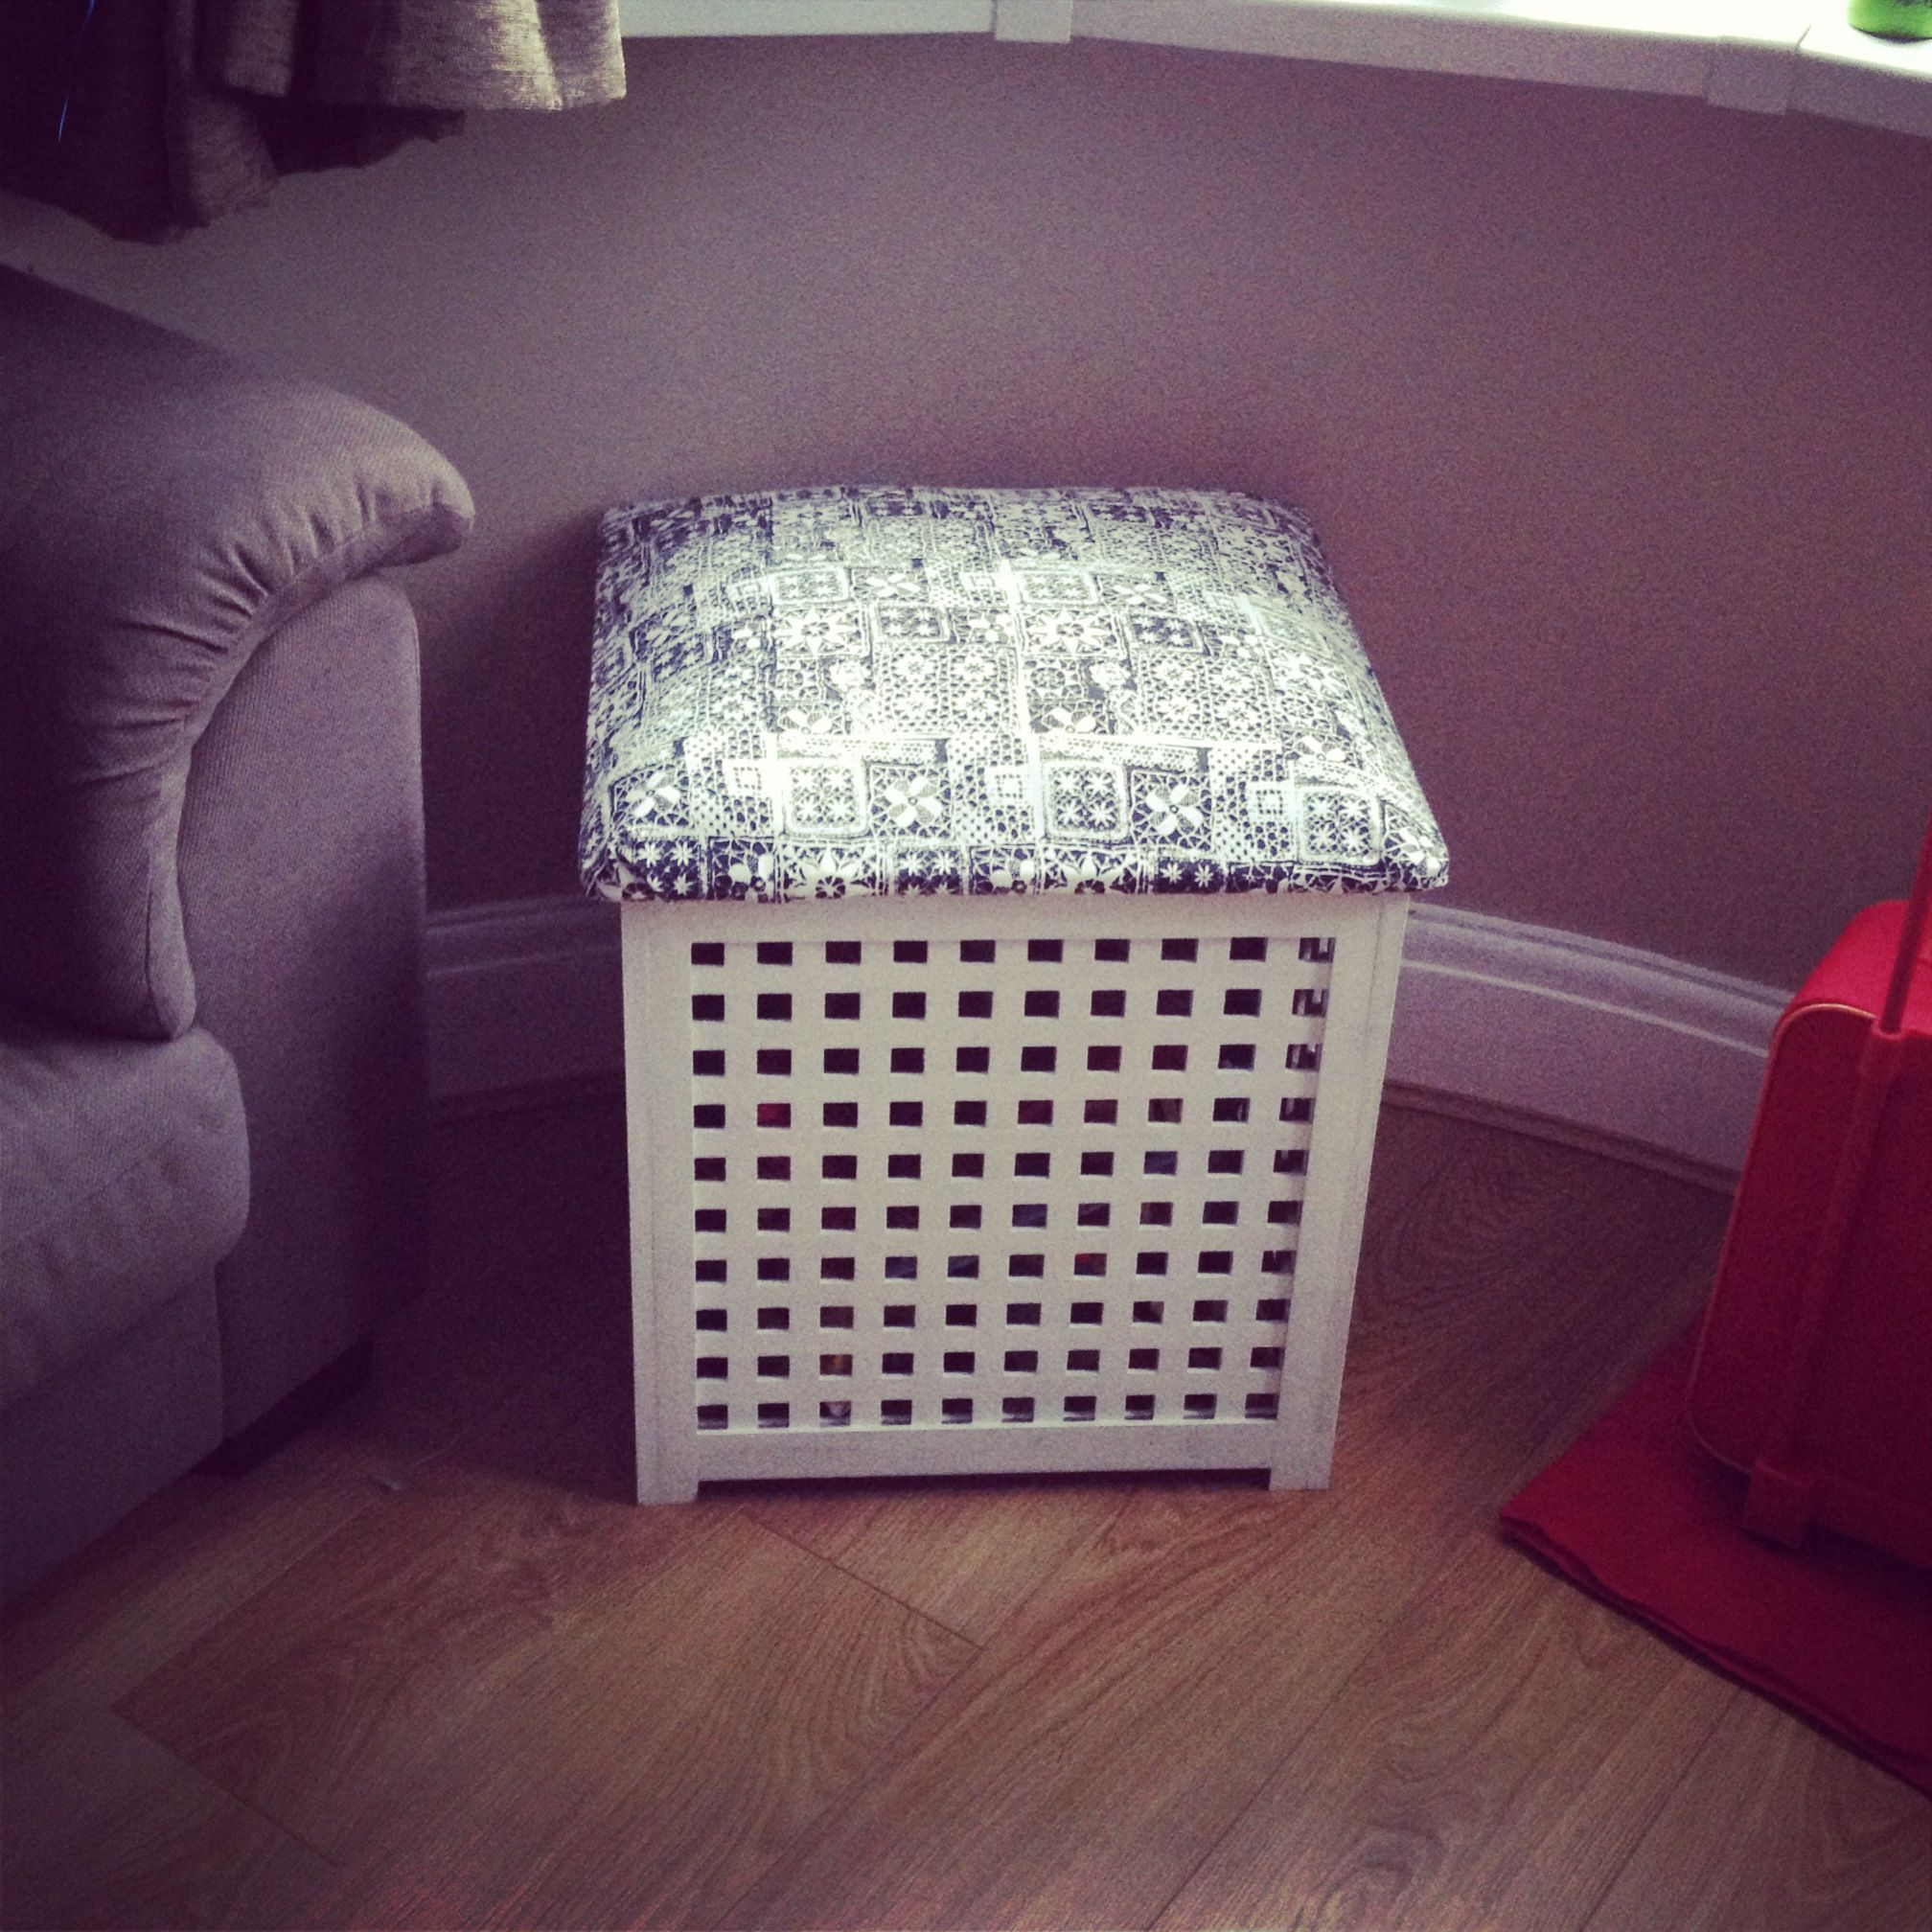 Ikea Hack Of My Hol Cupboard Hand Printed The Fabric Padded The Lid And Covered For A Storage Box Whi Ikea Side Table Wood Console Table Ikea Storage Boxes [ 2016 x 2016 Pixel ]